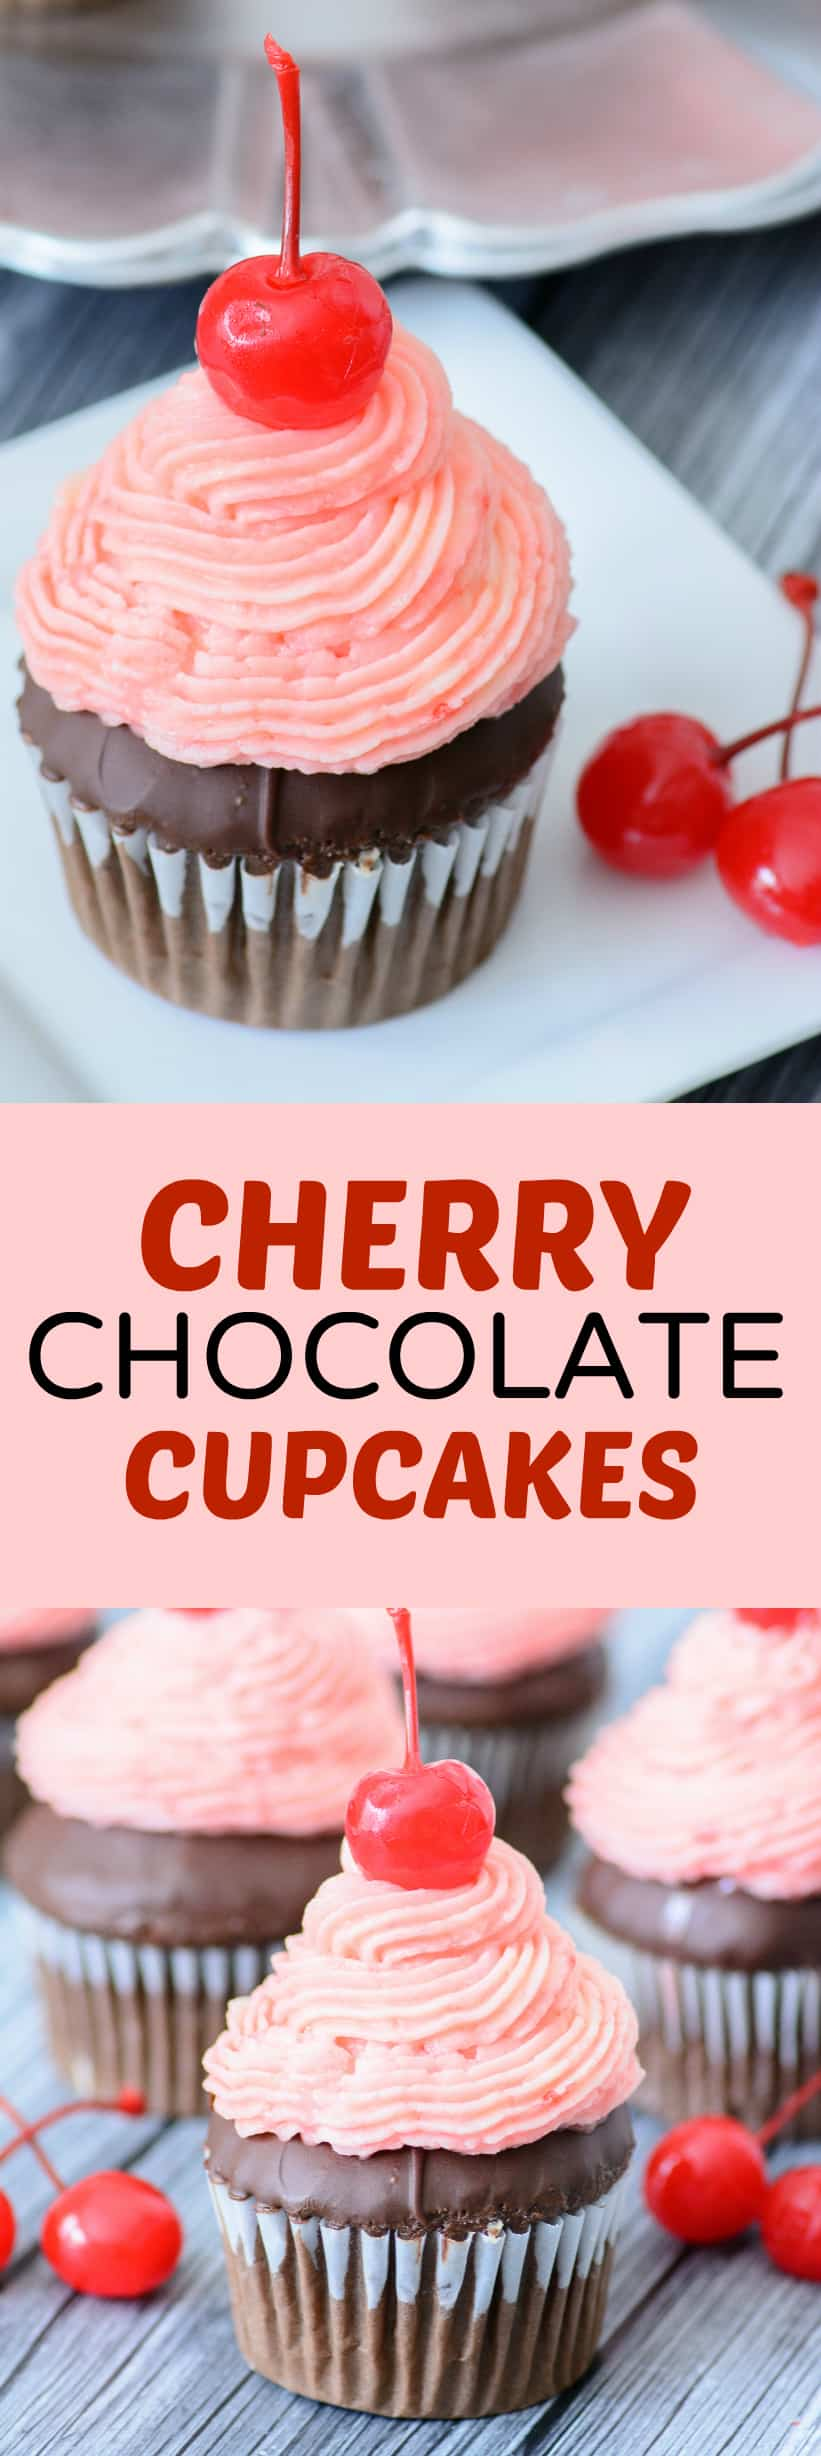 cherry chocolate cupcakes recipe